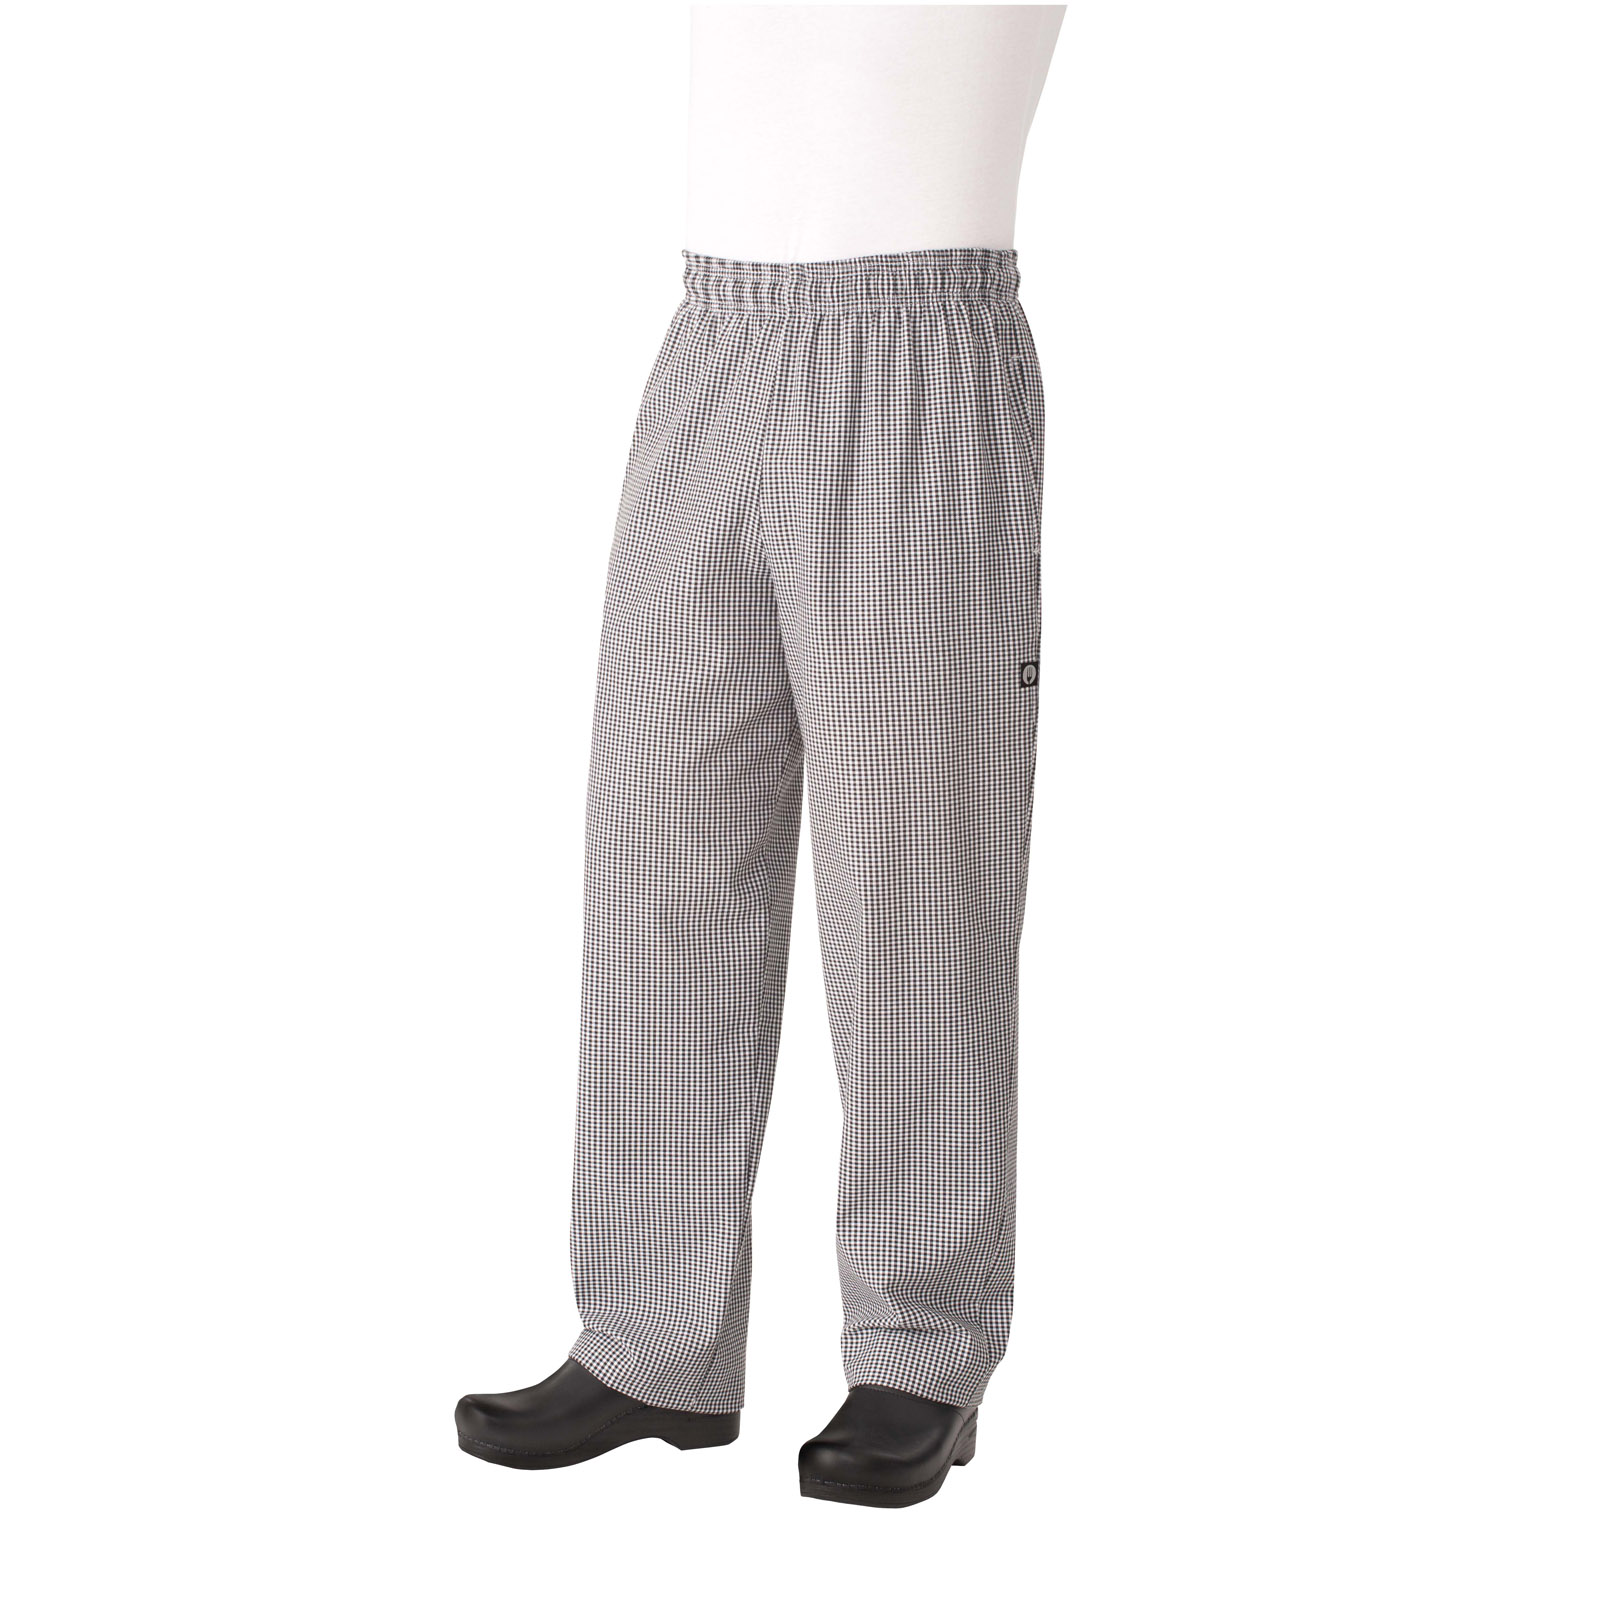 NBCP000M Chef Works chef's pants